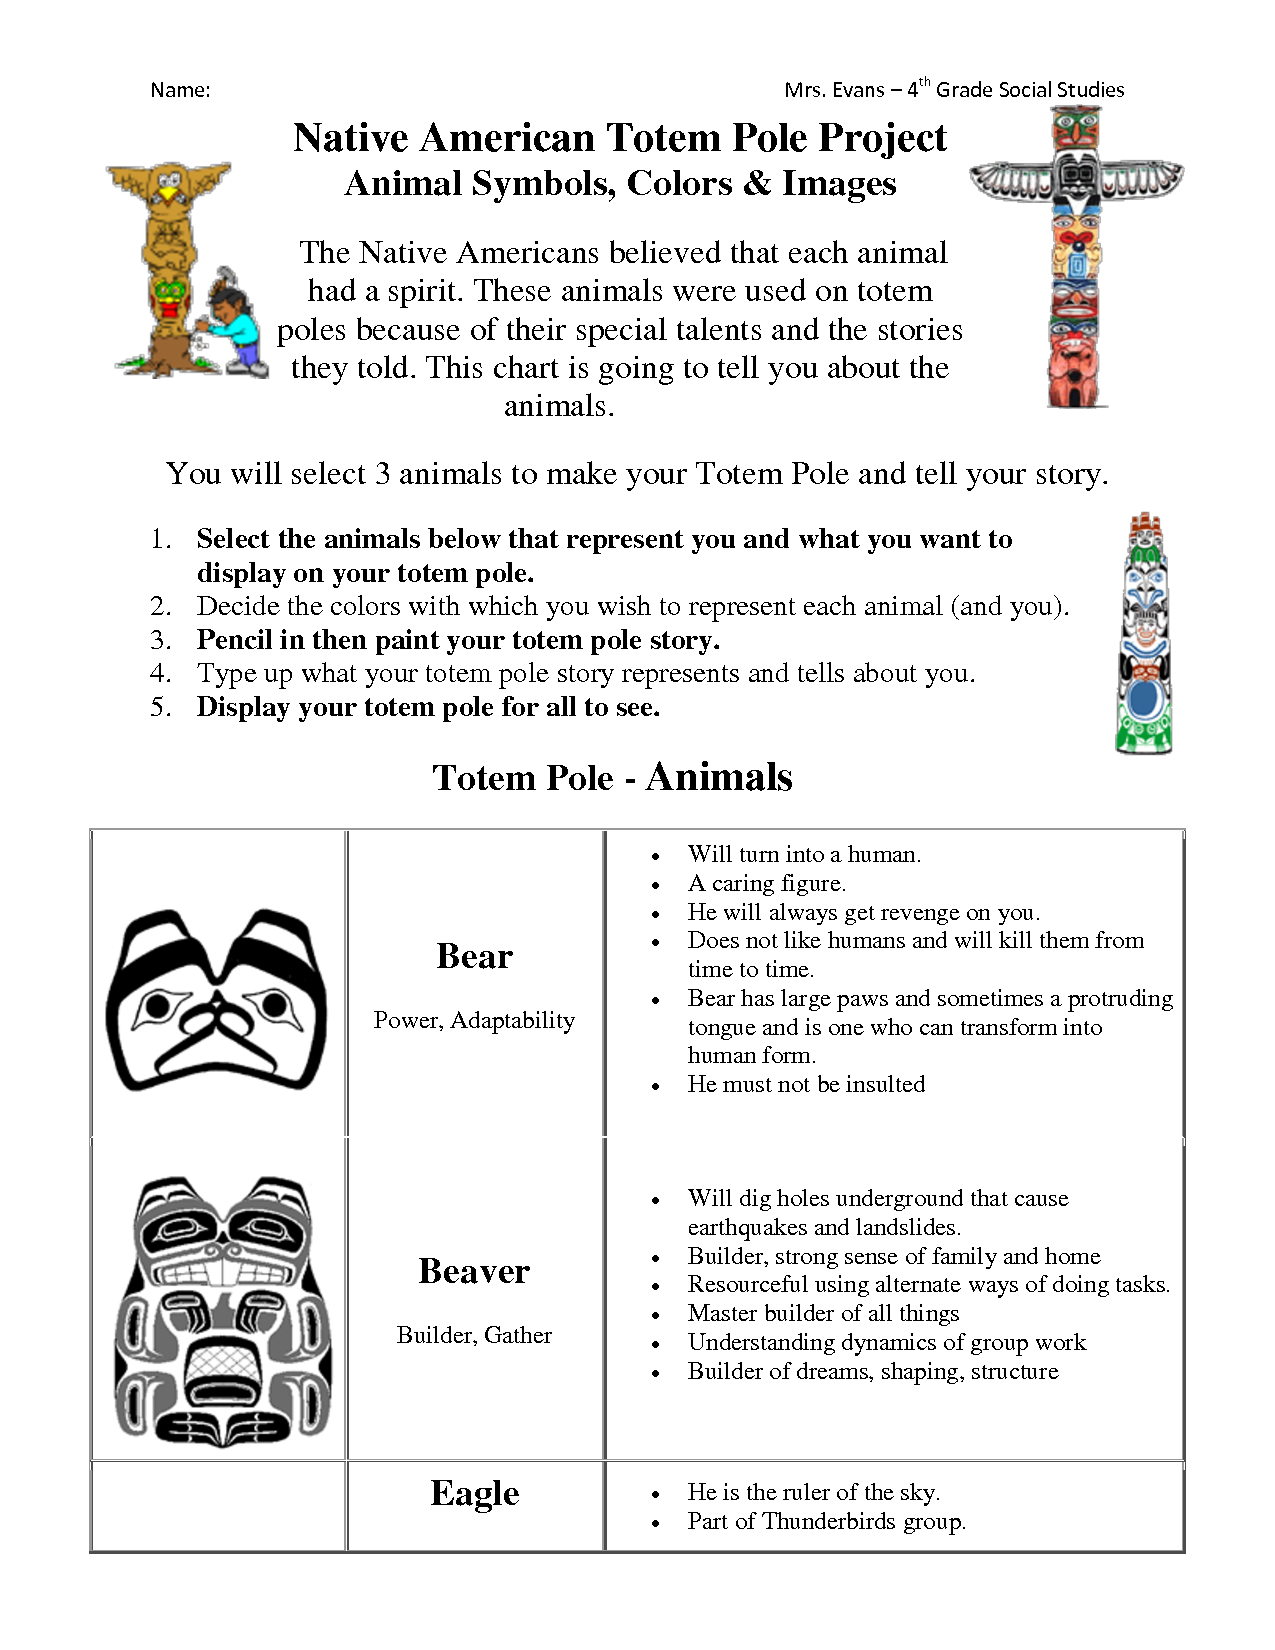 native american animal symbols and meanings | Native American ...